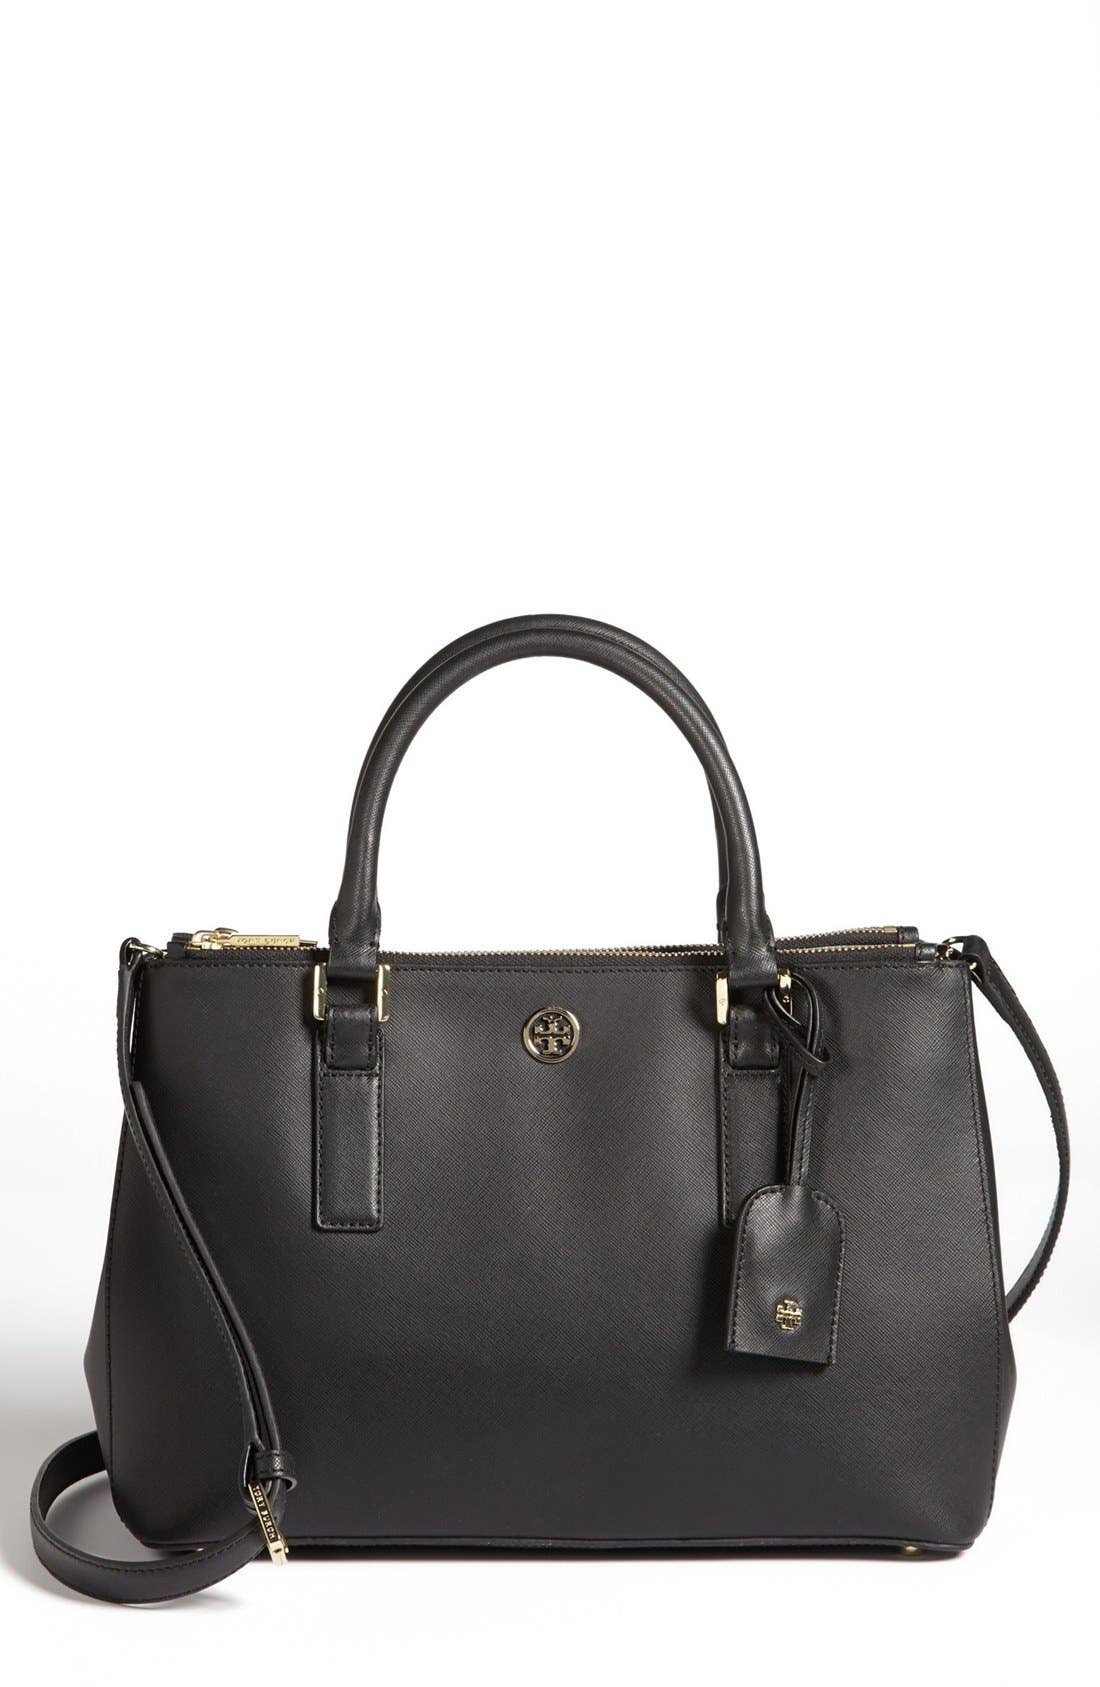 Main Image - Tory Burch 'Robinson - Mini' Double Zip Tote